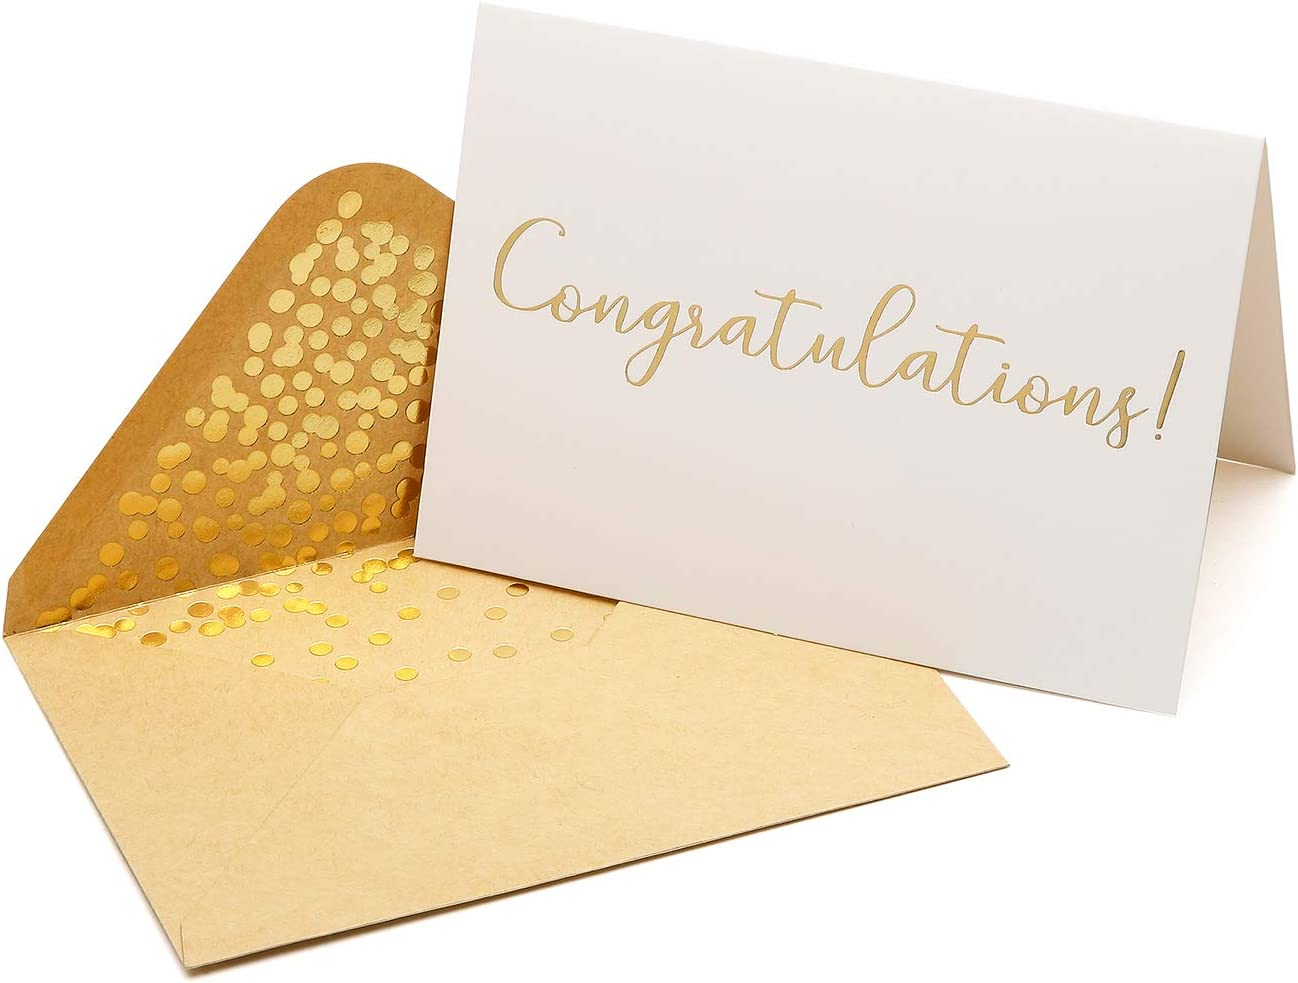 "50 Pack Congratulations Card – Elegant Greeting Cards With ''Congratulations'' Embossed In Gold Foil Letters – For Engagement, Graduation, Wedding - 52 Kraft Envelopes Included - 4"" x 6"" - White"